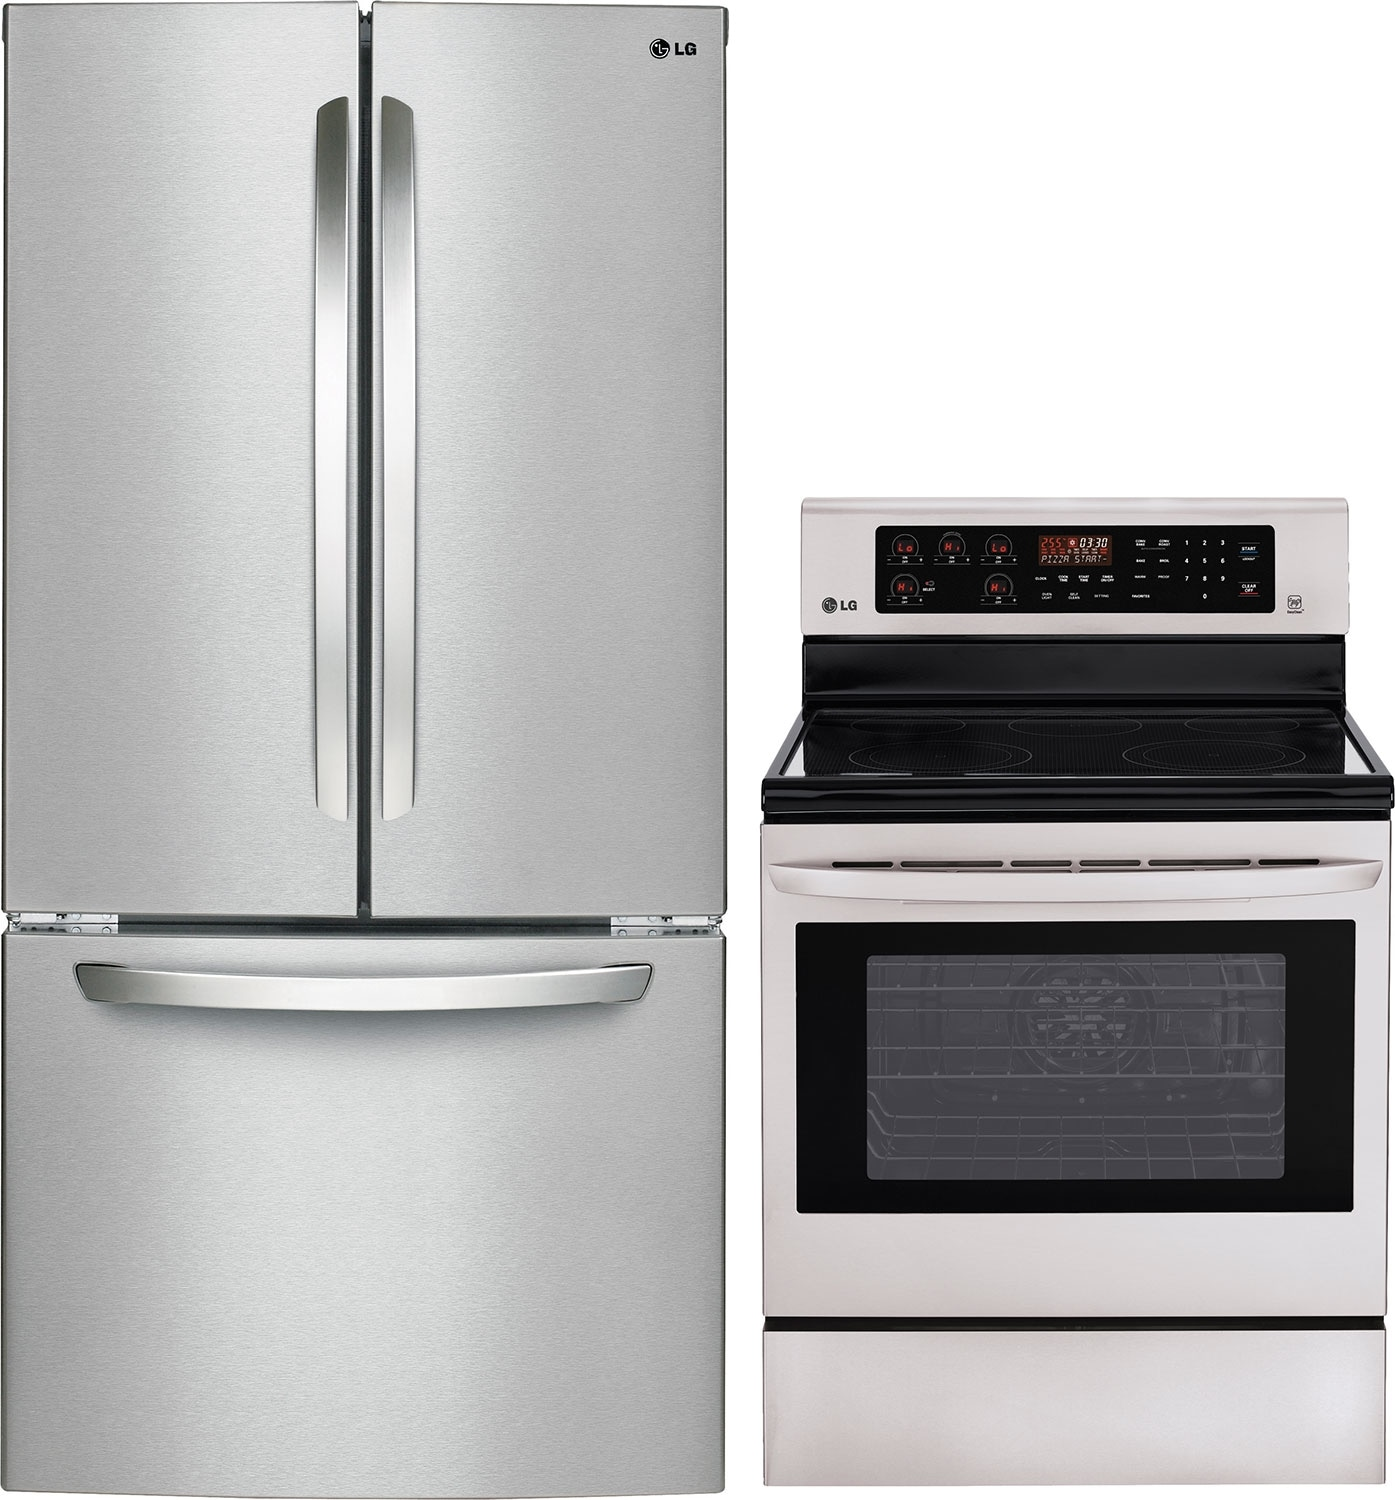 LG 24 Cu. Ft. French-Door Refrigerator and 6.3 Cu. Ft. Electric Range – Stainless Steel